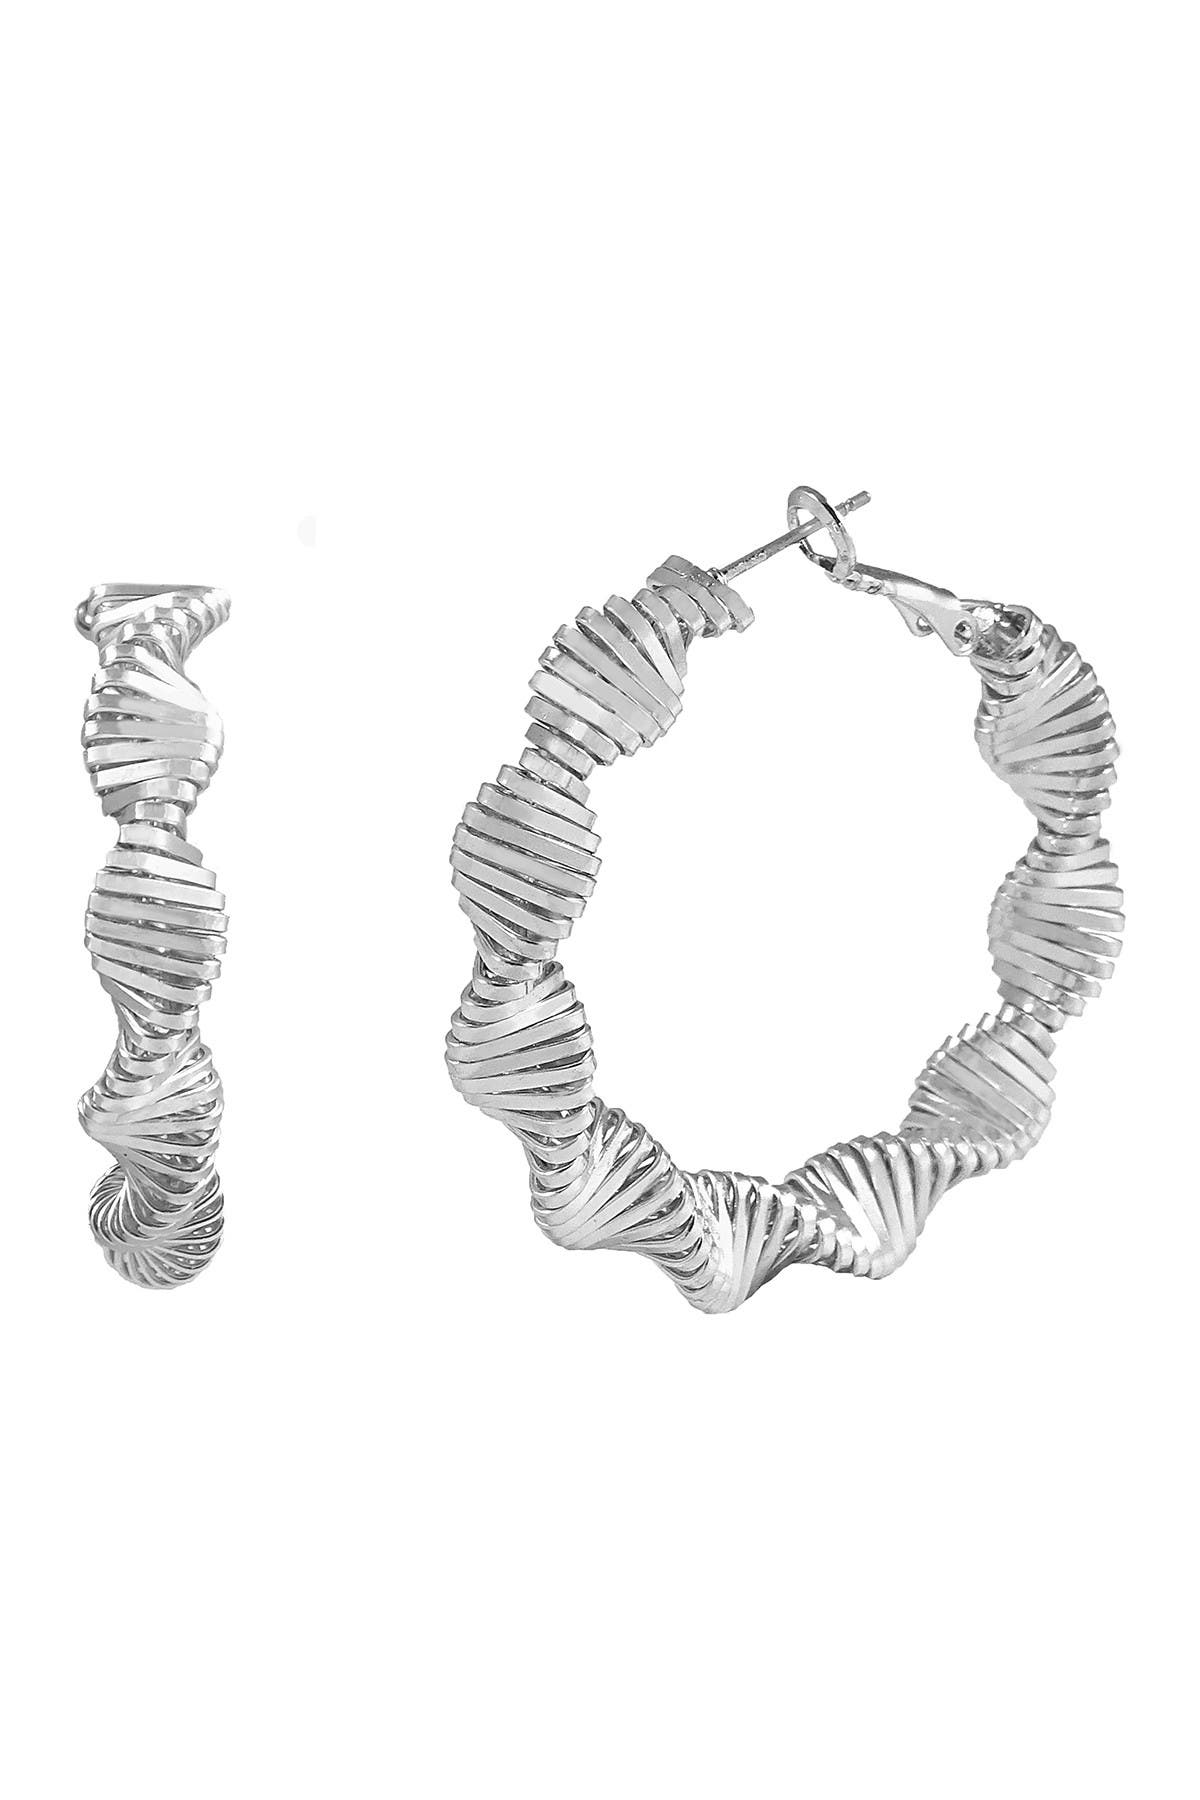 Image of Savvy Cie 14K White Gold Plated Zig Zag Swag Earrings